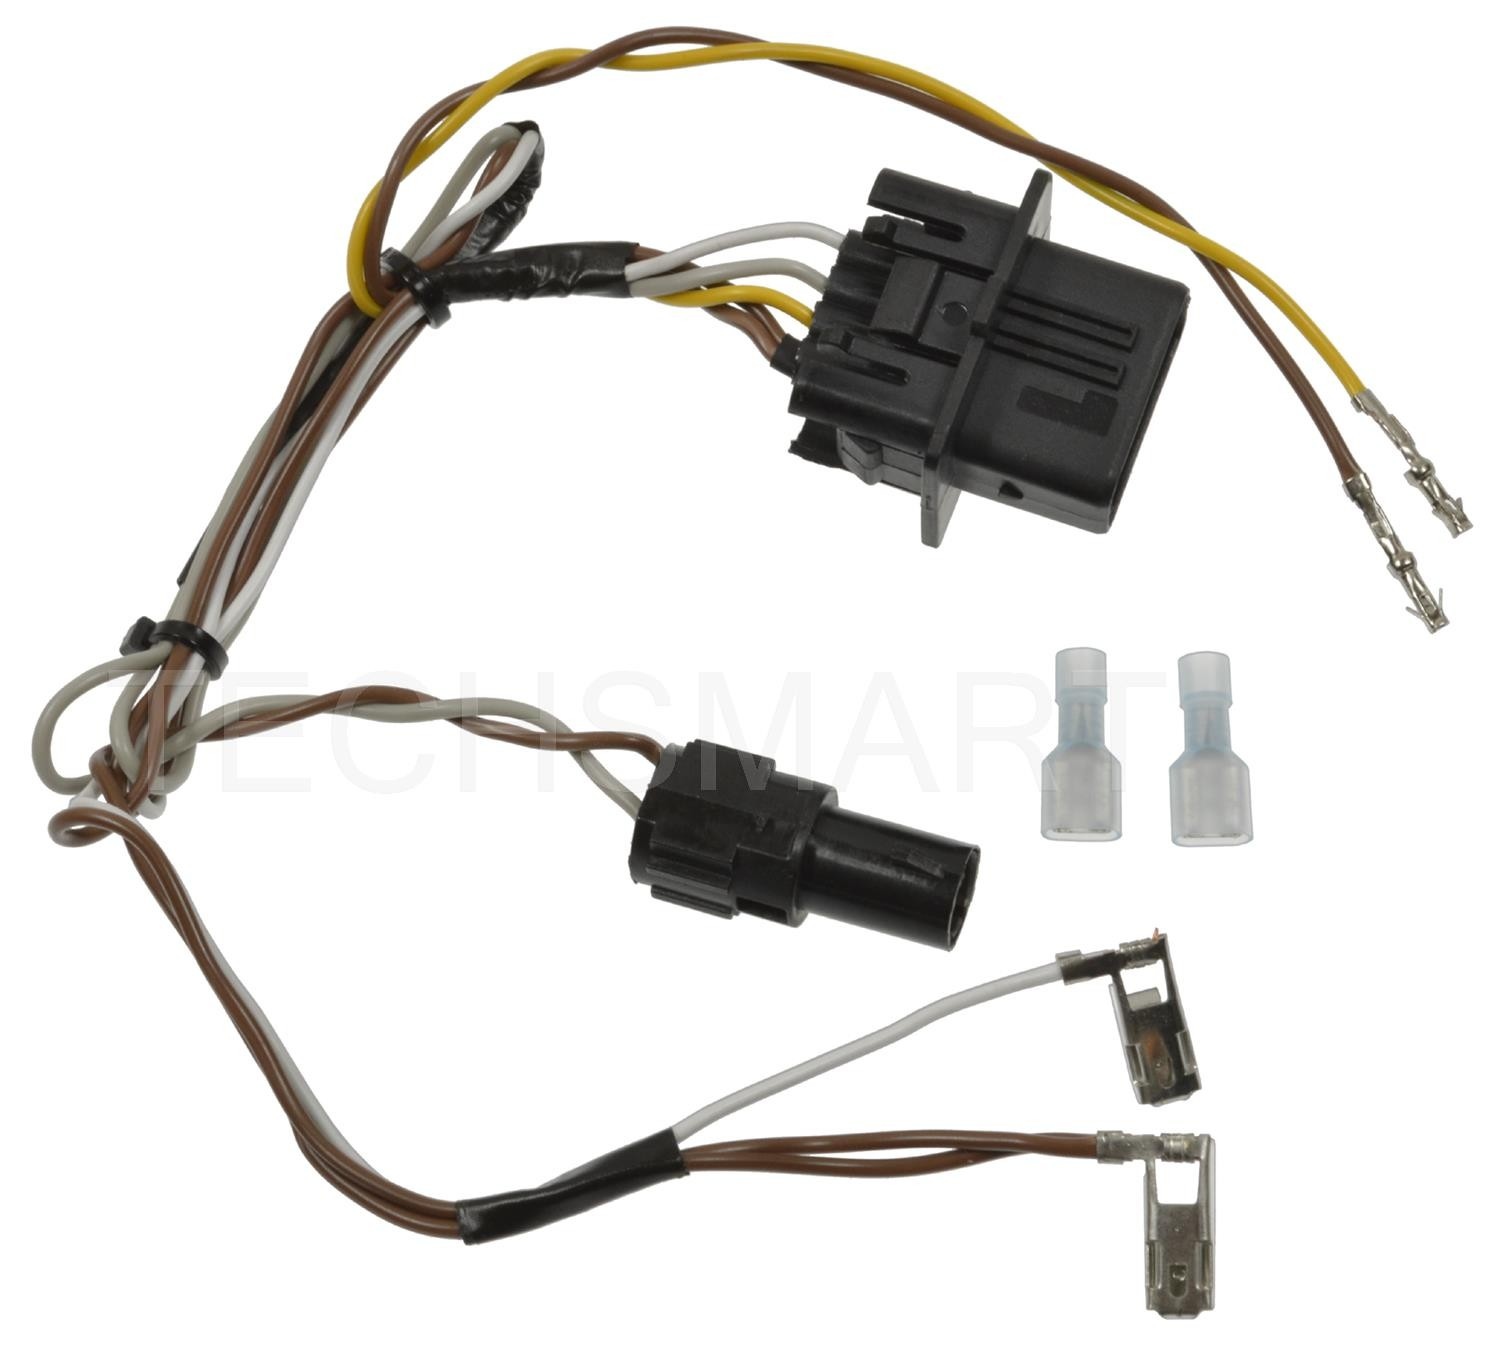 hight resolution of standard motor f90003 headlight wiring harness for mercedes benz clk320